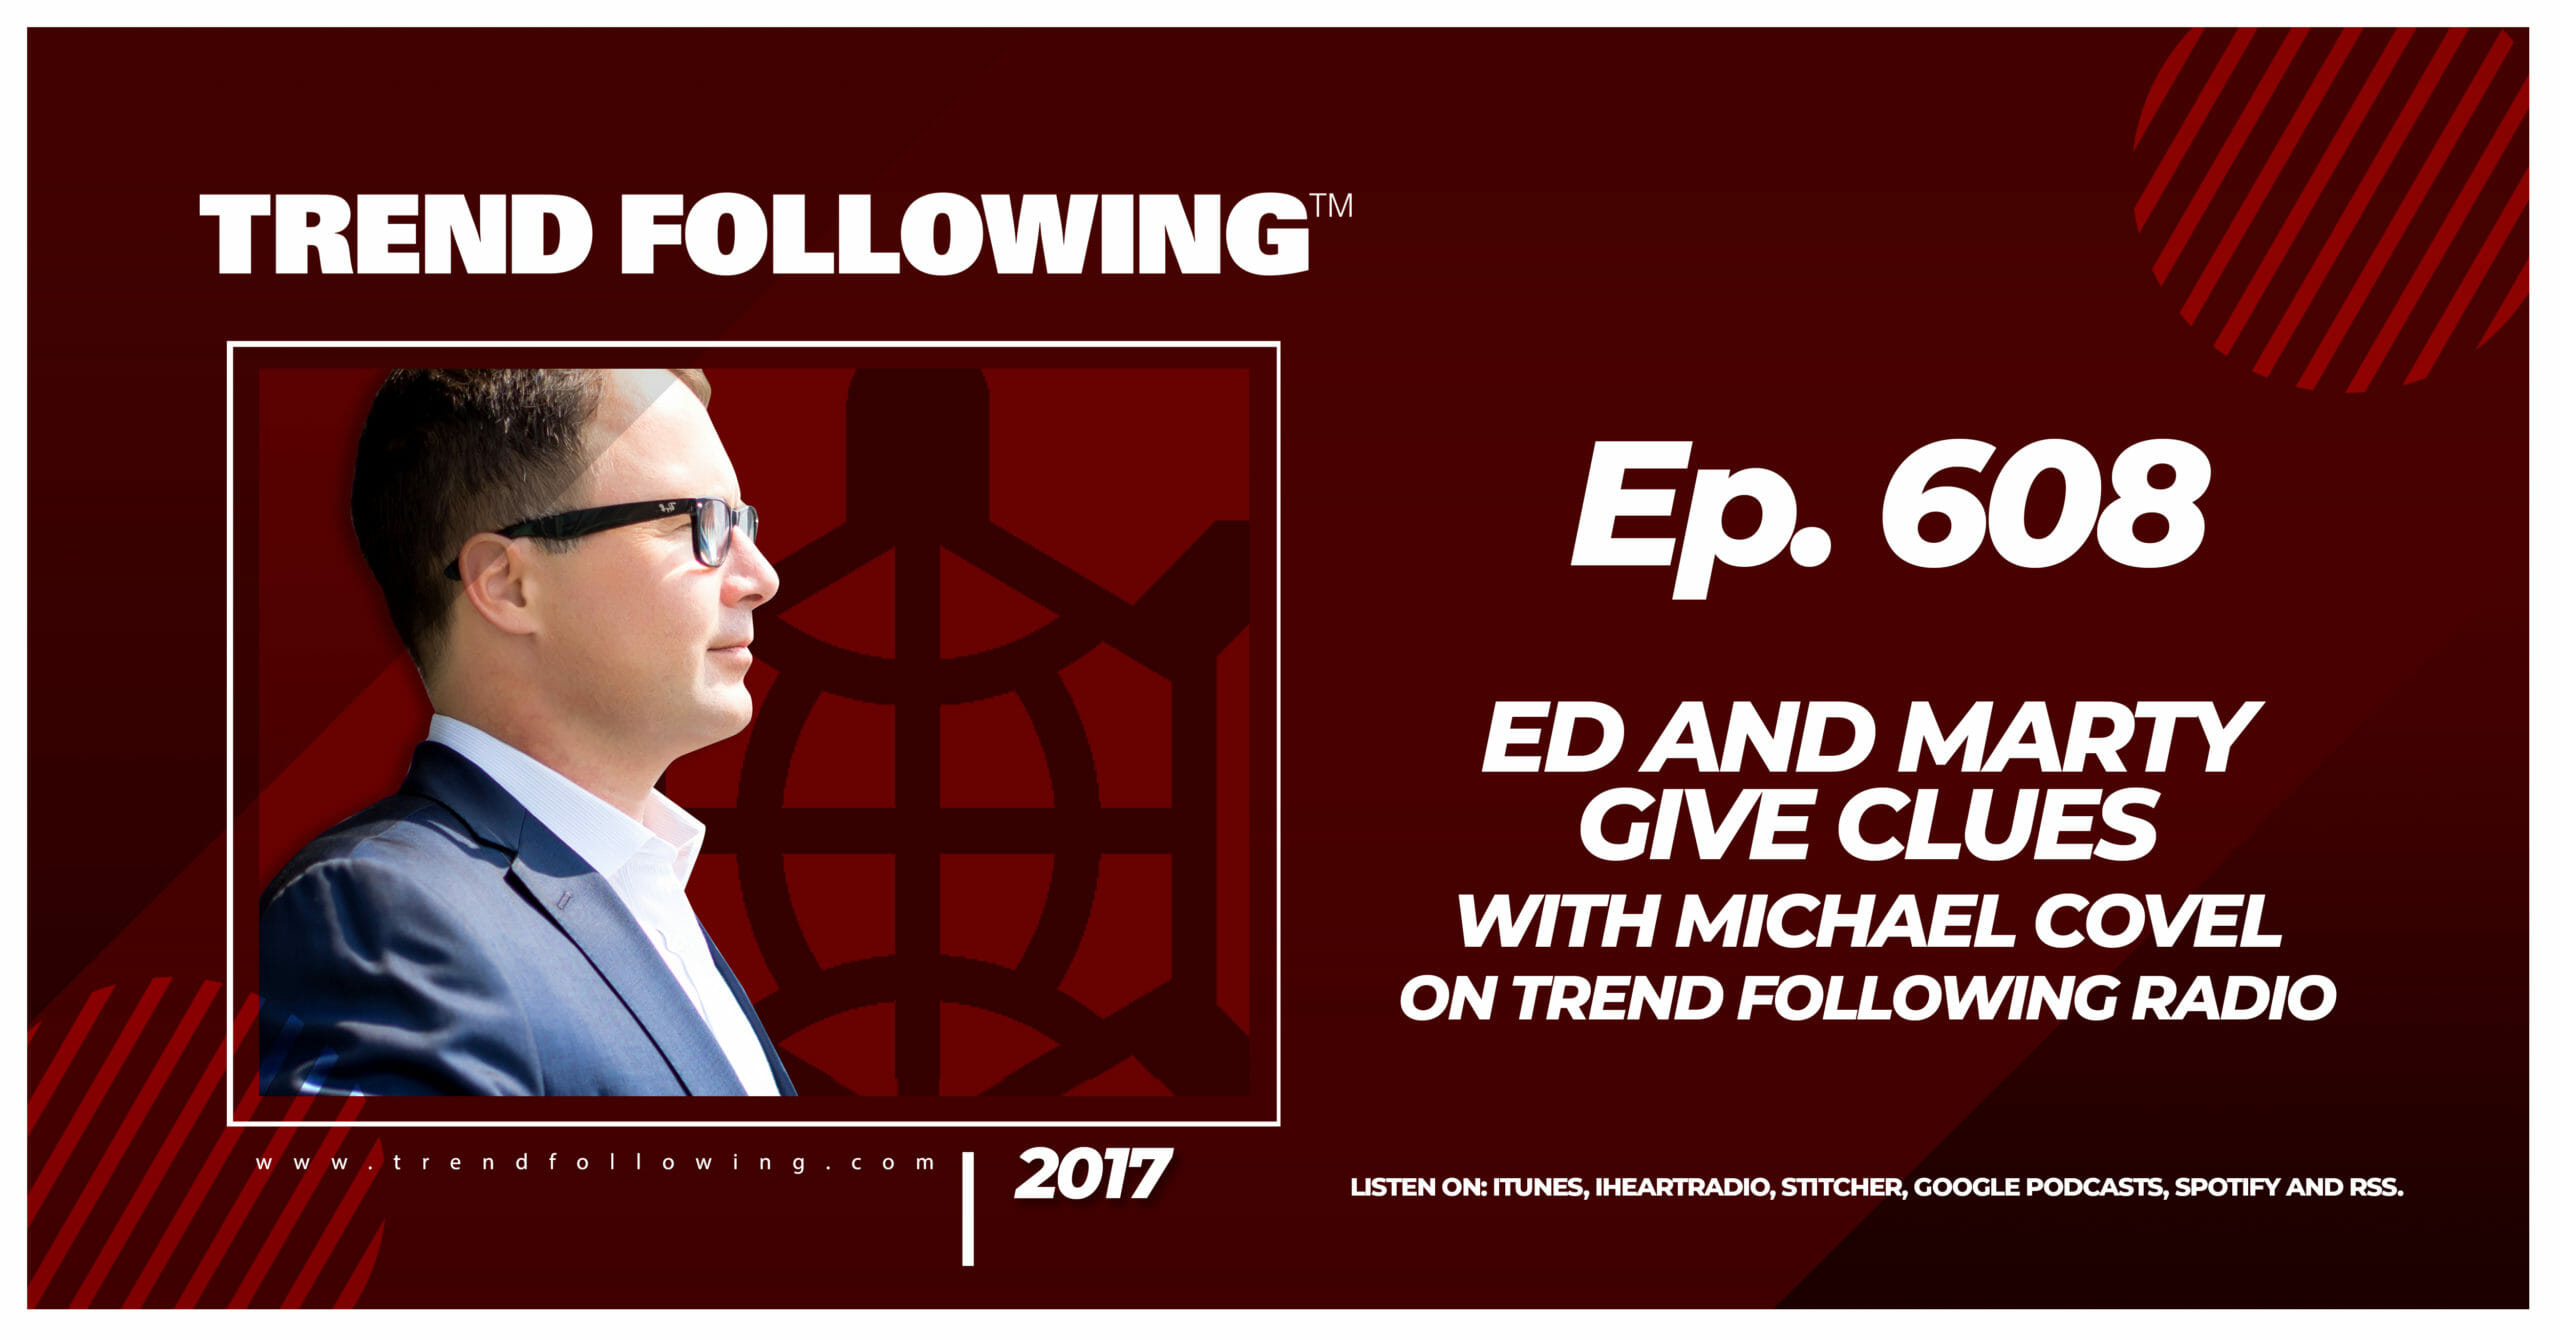 Ed and Marty Give Clues with Michael Covel on Trend Following Radio